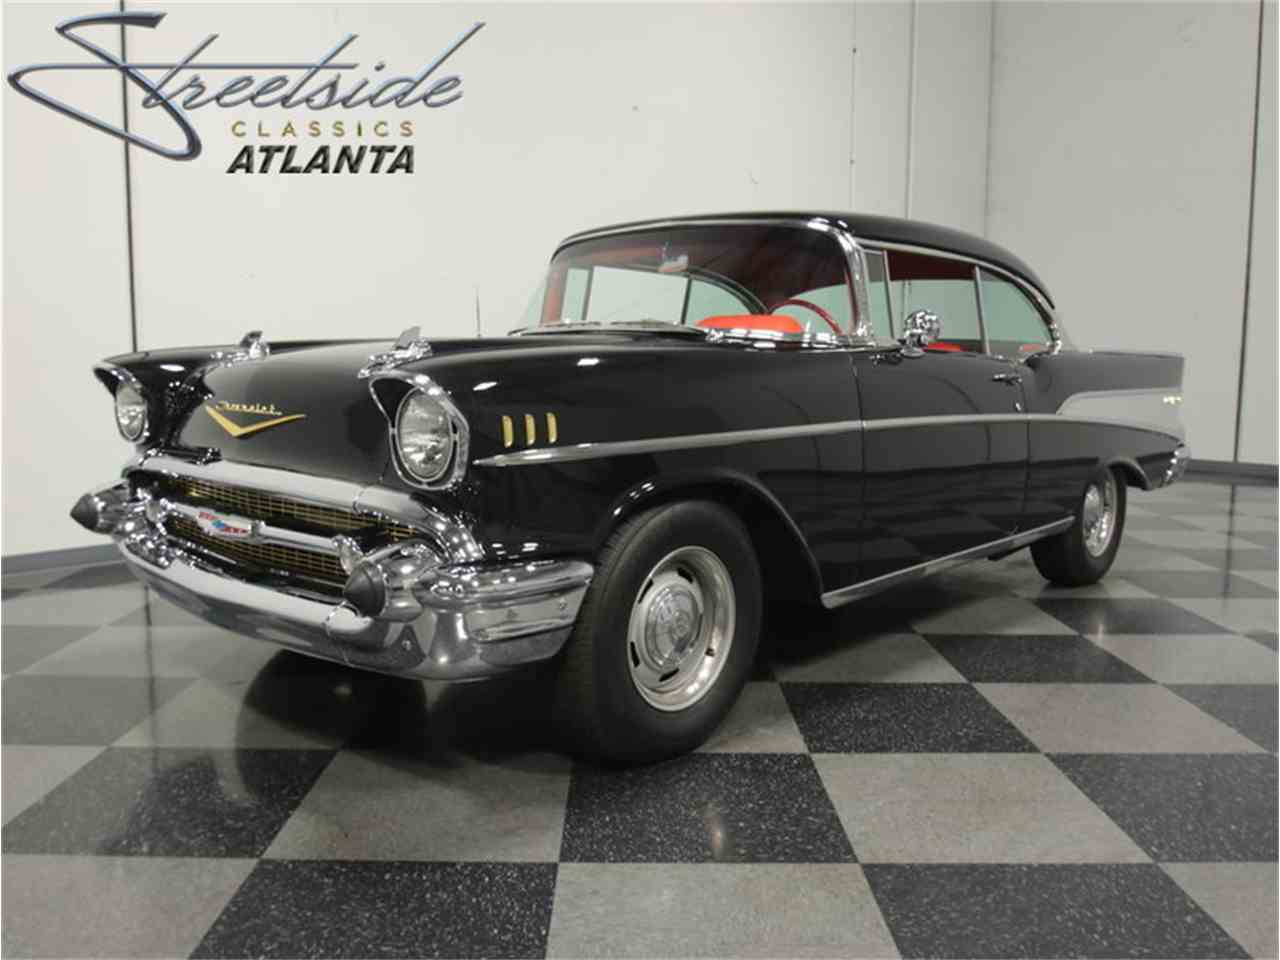 Chevrolet bel air hardtop for sale upcoming chevrolet - 1957 Chevrolet Bel Air Hard Top For Sale Cc 923882